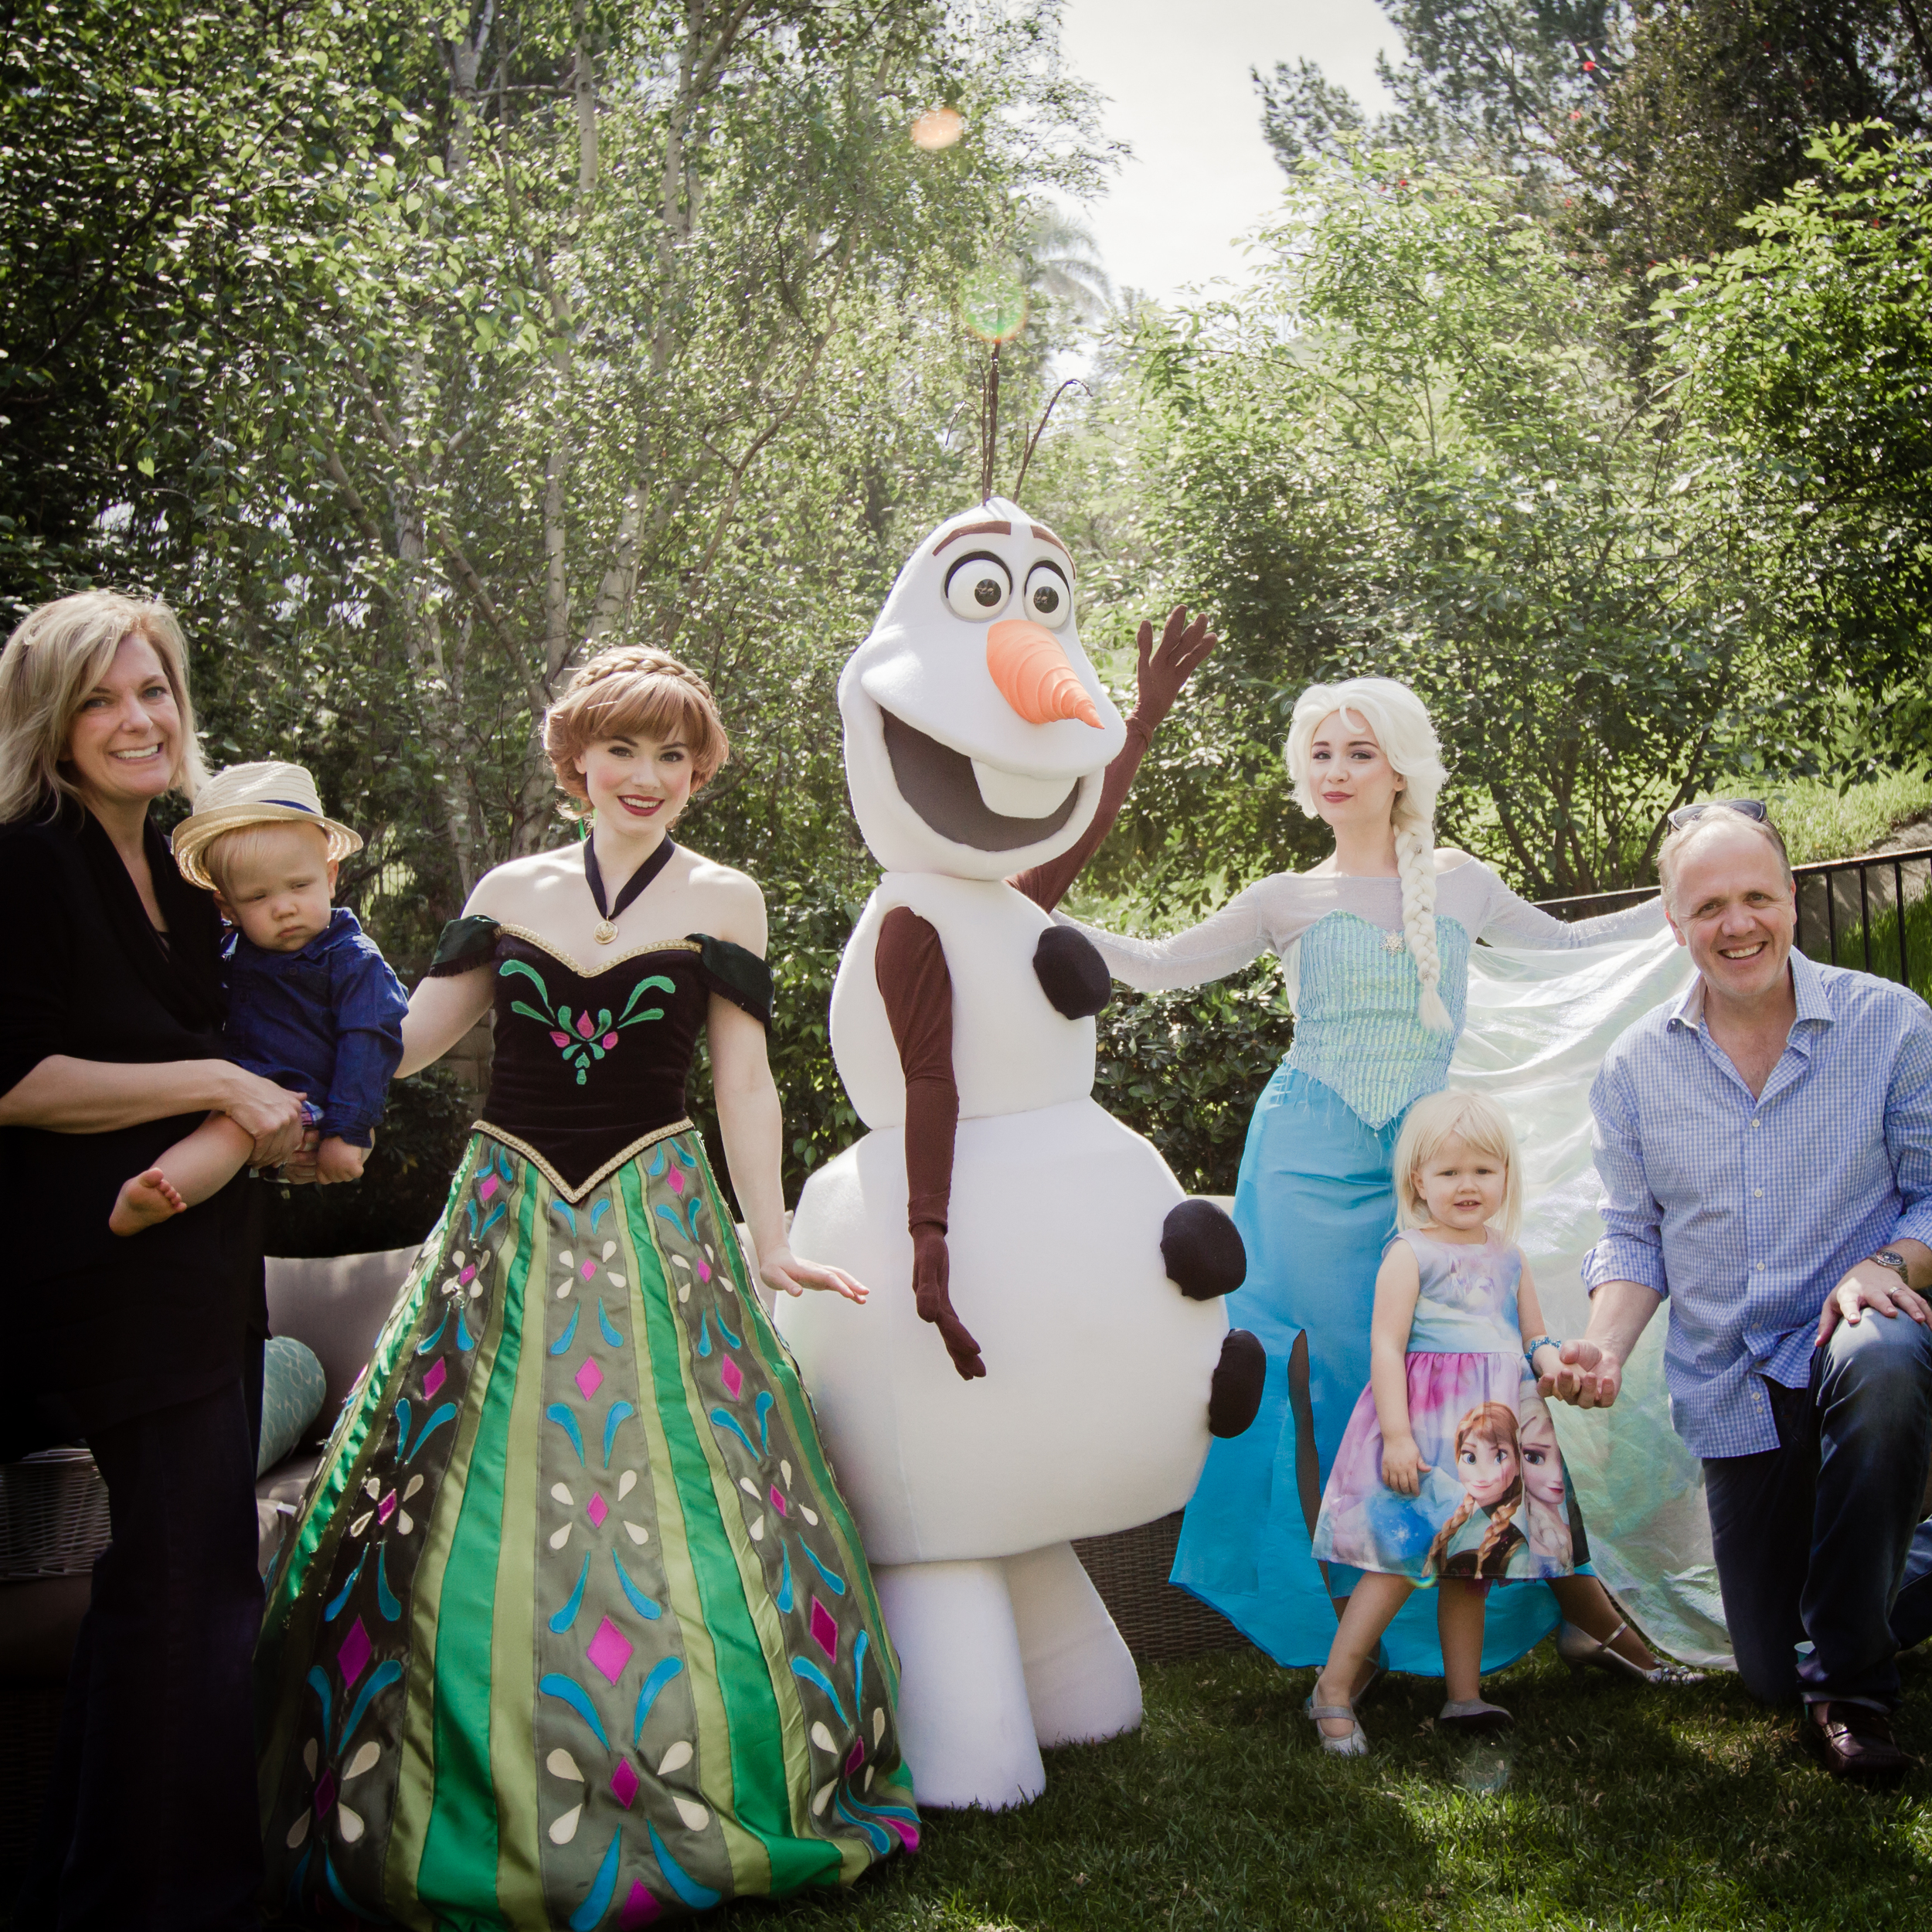 With the Snow Queen, Norwegian Princess and our Magic Snowman, you can celebrate winter in summer... or anytime of year!